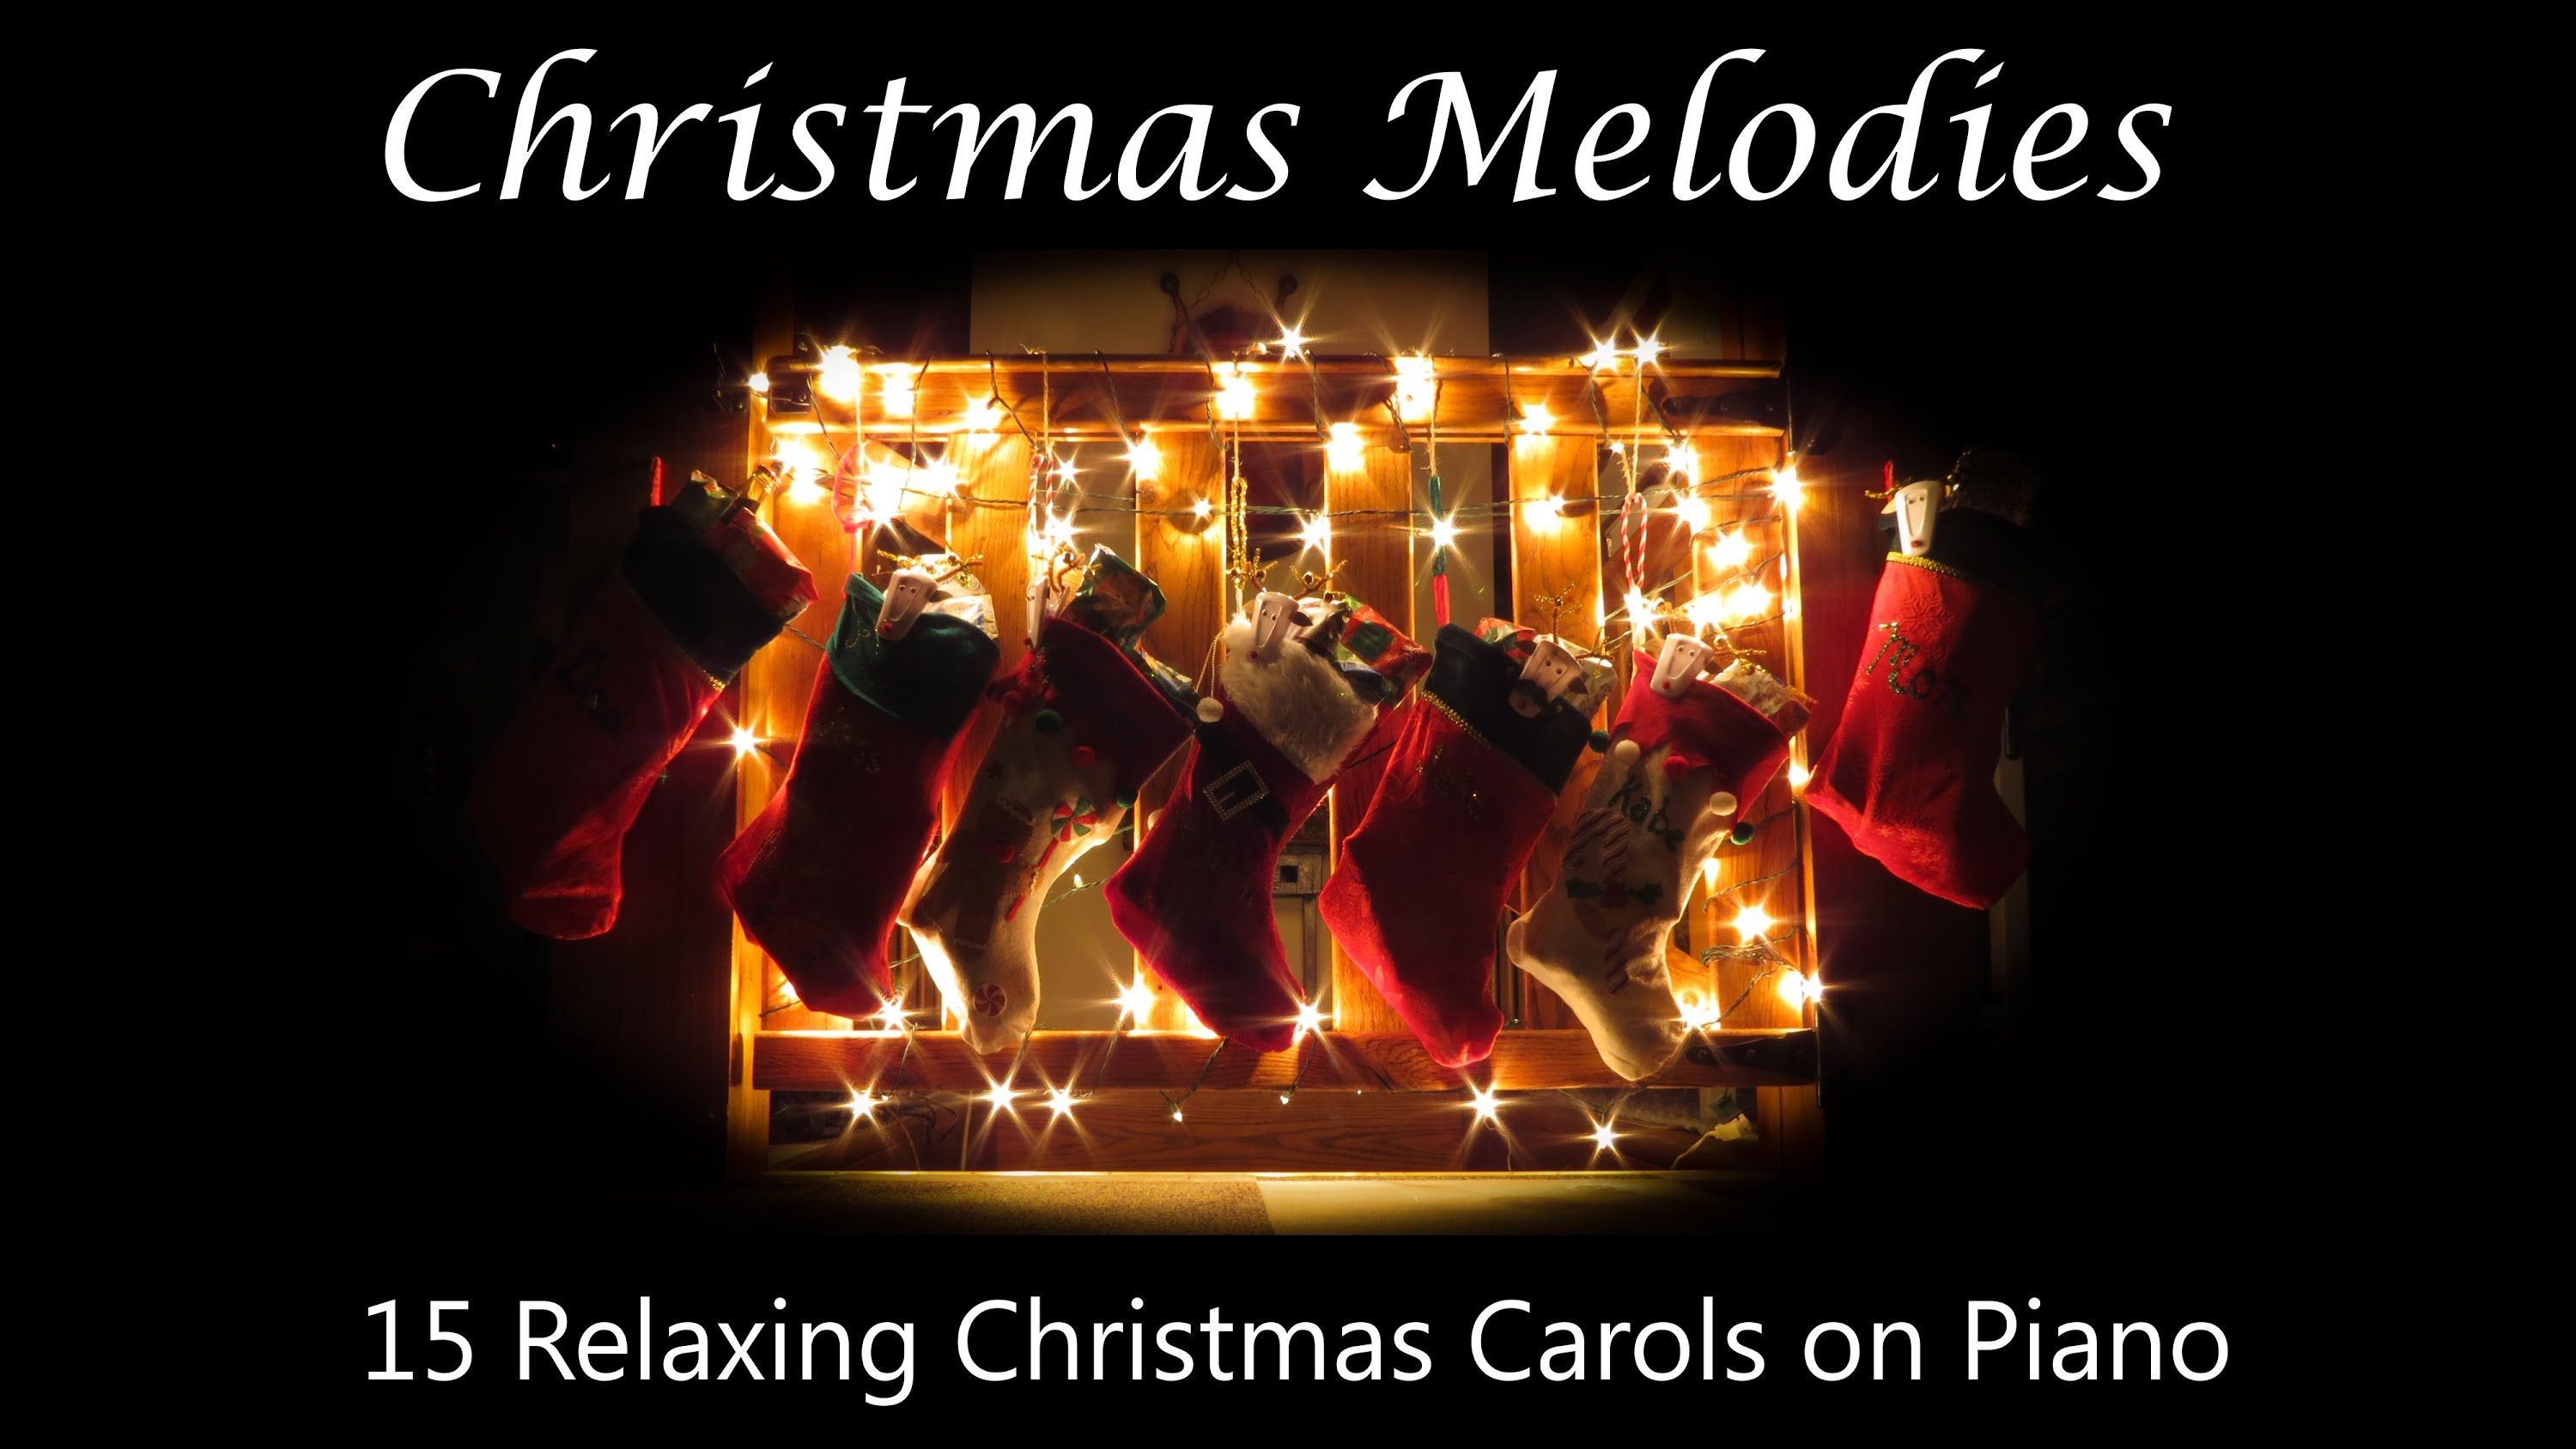 Christmas Melodies 15 Relaxing Christmas Carols on Piano